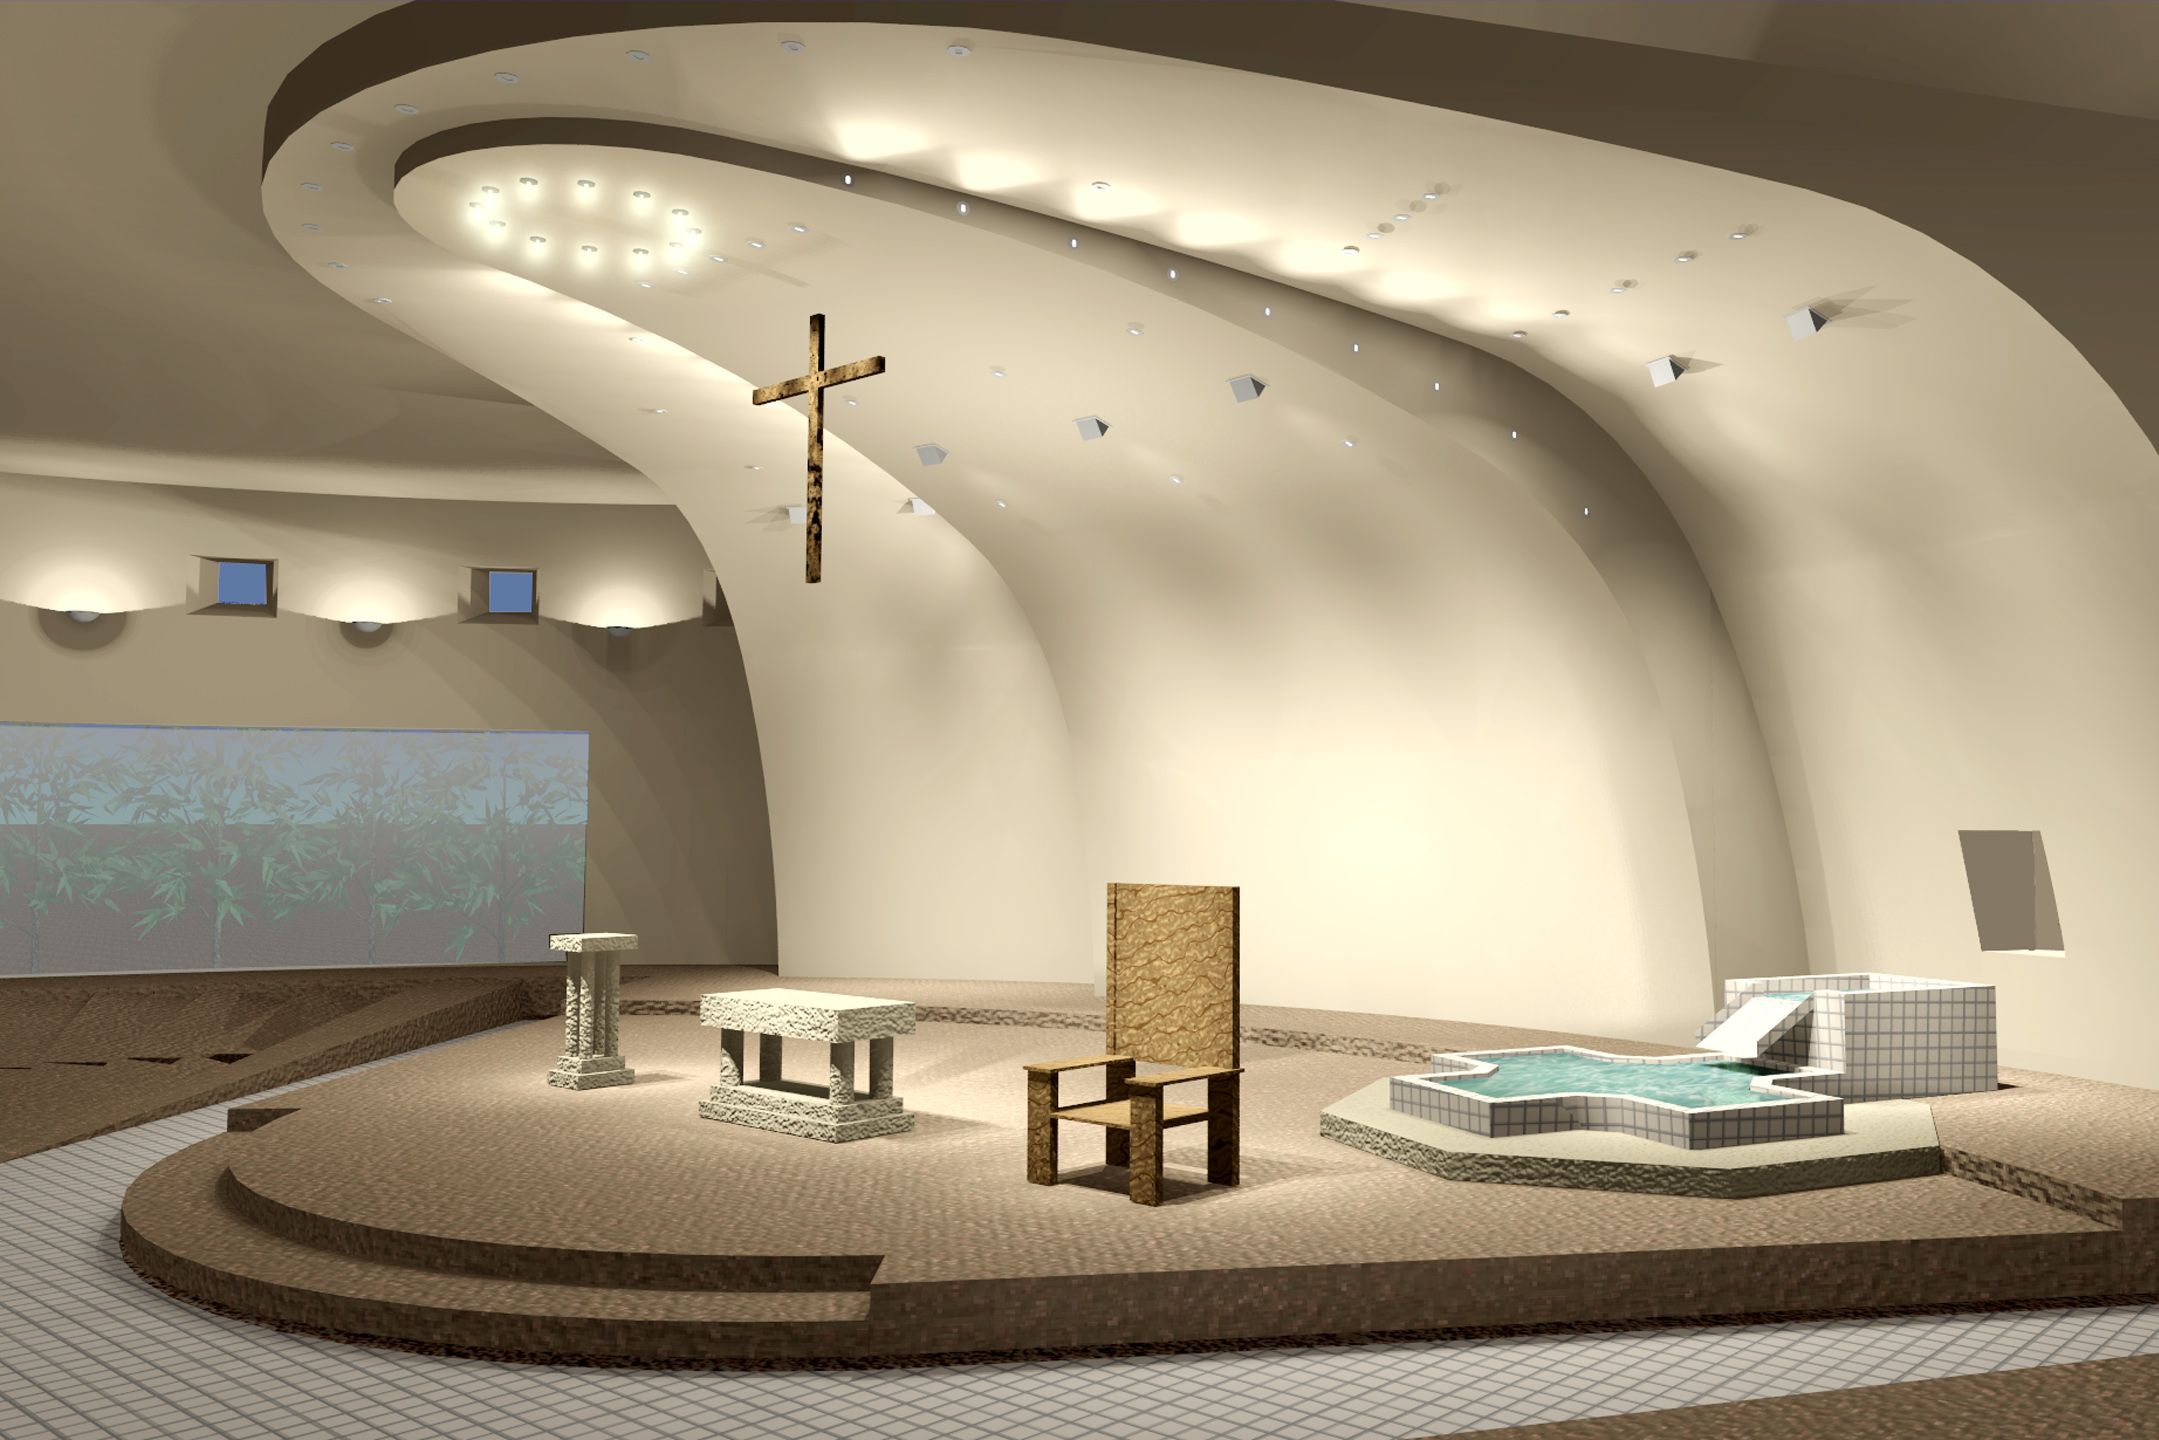 18 Best Photos Of Contemporary Church Interior Design Small Japanese Interior Design Interio Arquitectura Religiosa Modelos De Arquitectura Diseno De Iglesia